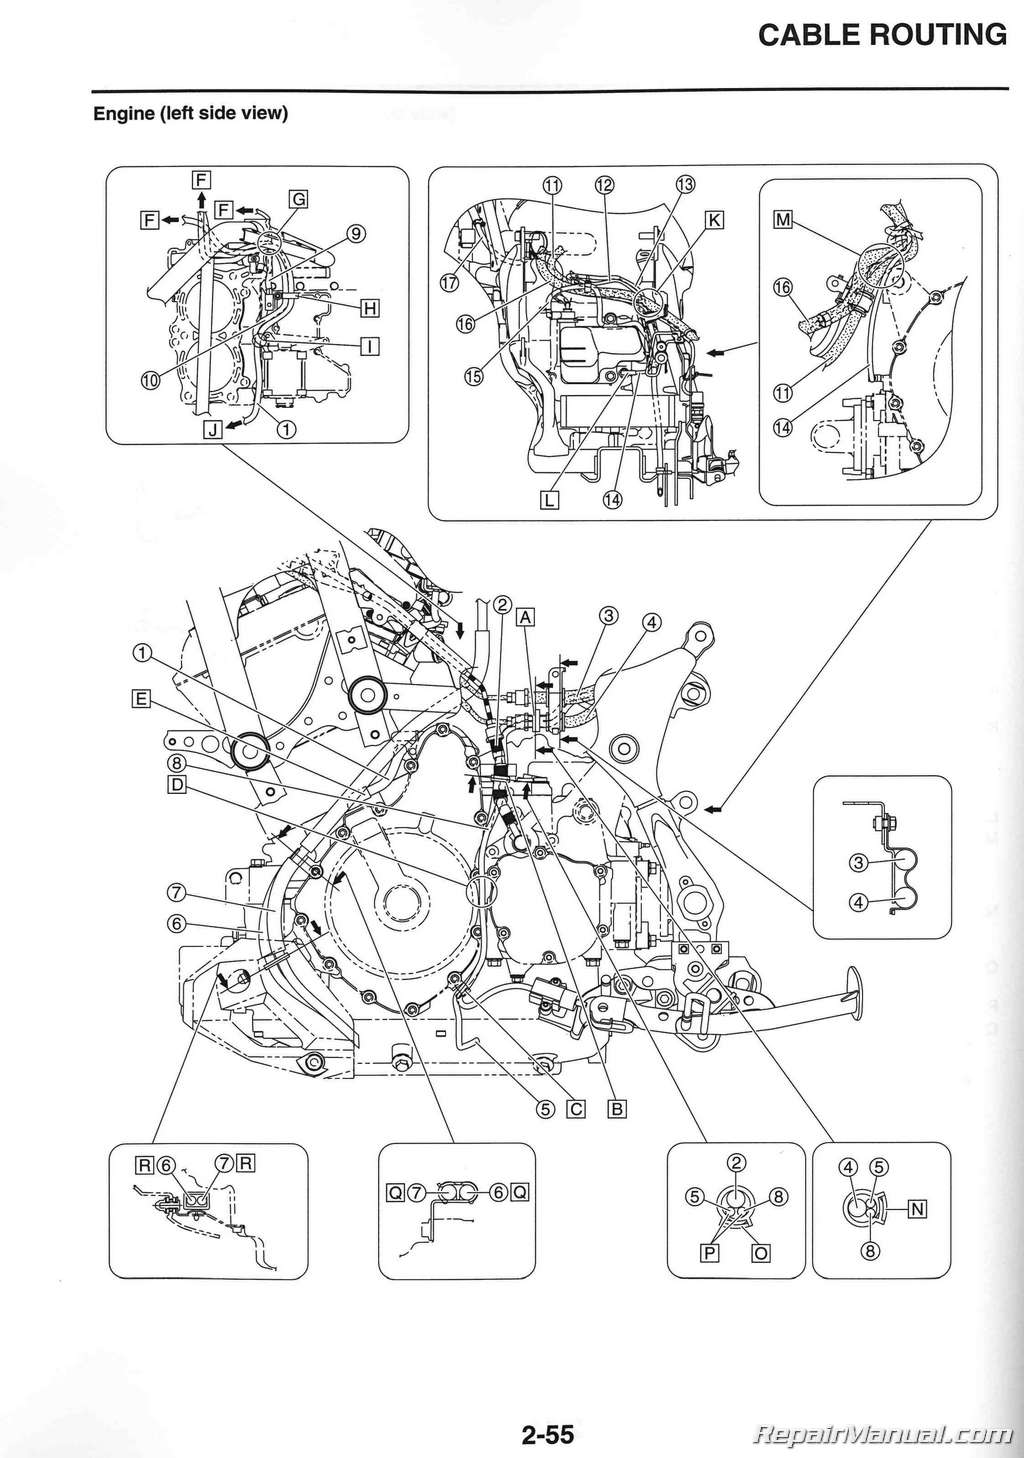 Kubota Rtv 900 Transmission Parts Diagram. Kubota. Wiring